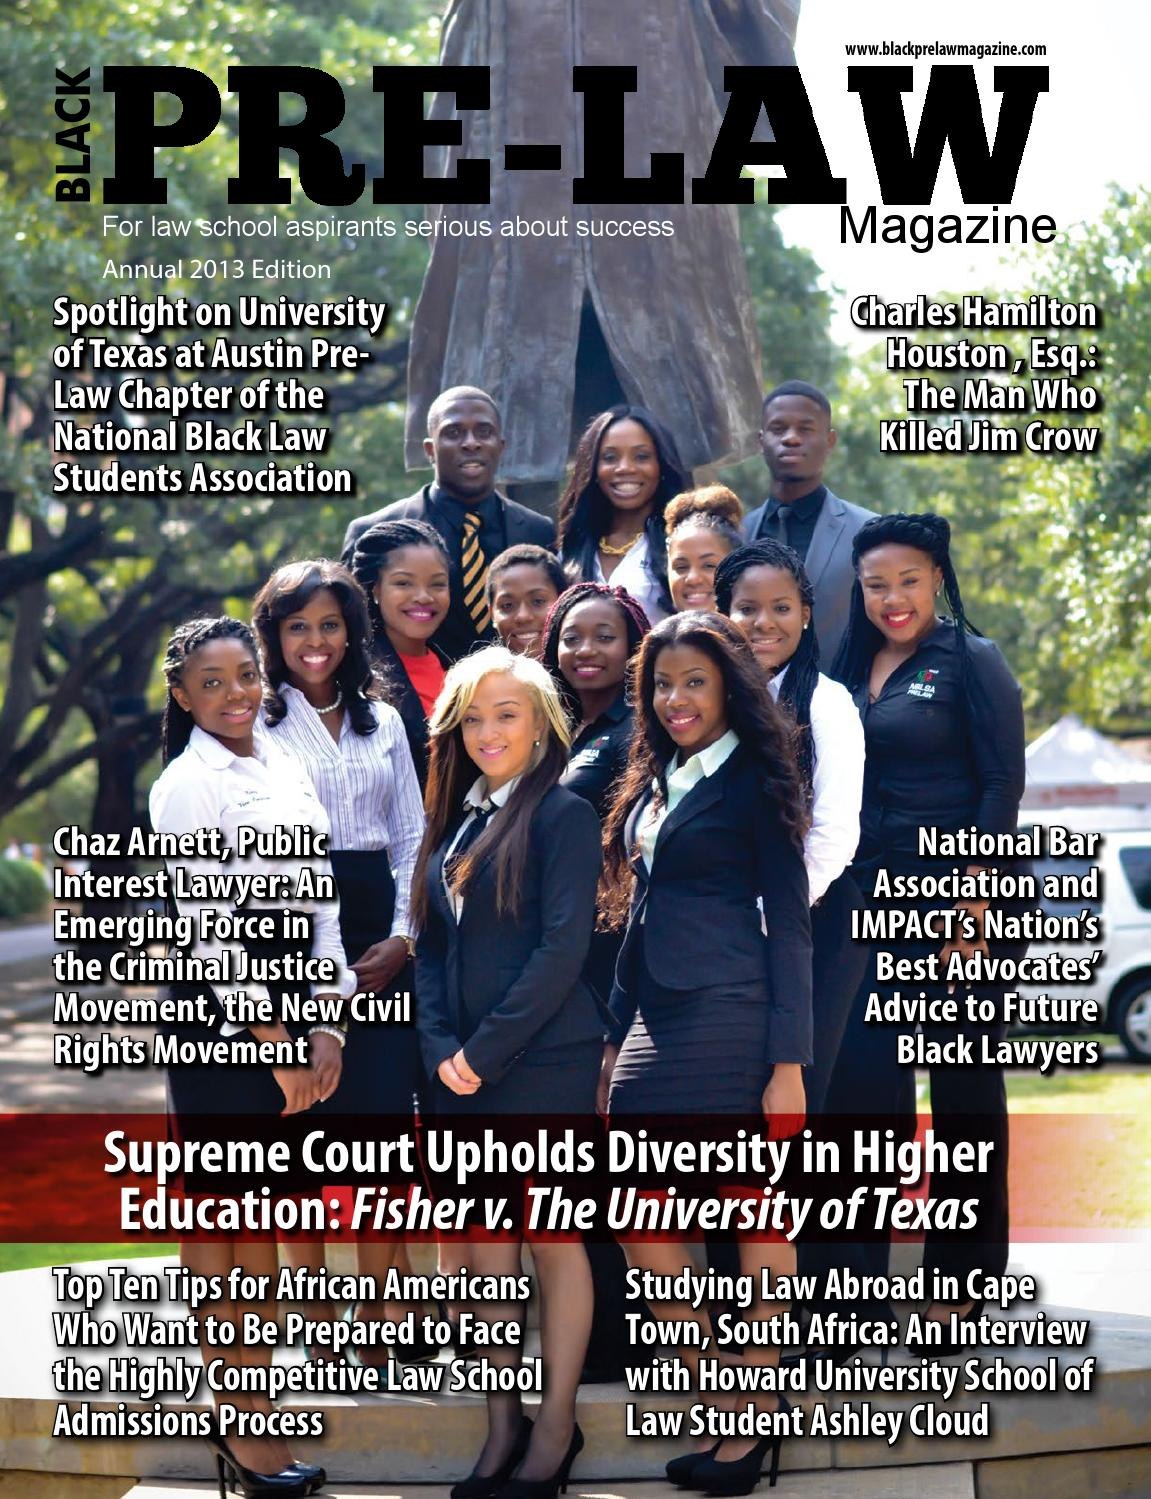 black pre law magazine third annual edition by black pre law black pre law magazine third annual edition 2013 by black pre law magazine issuu